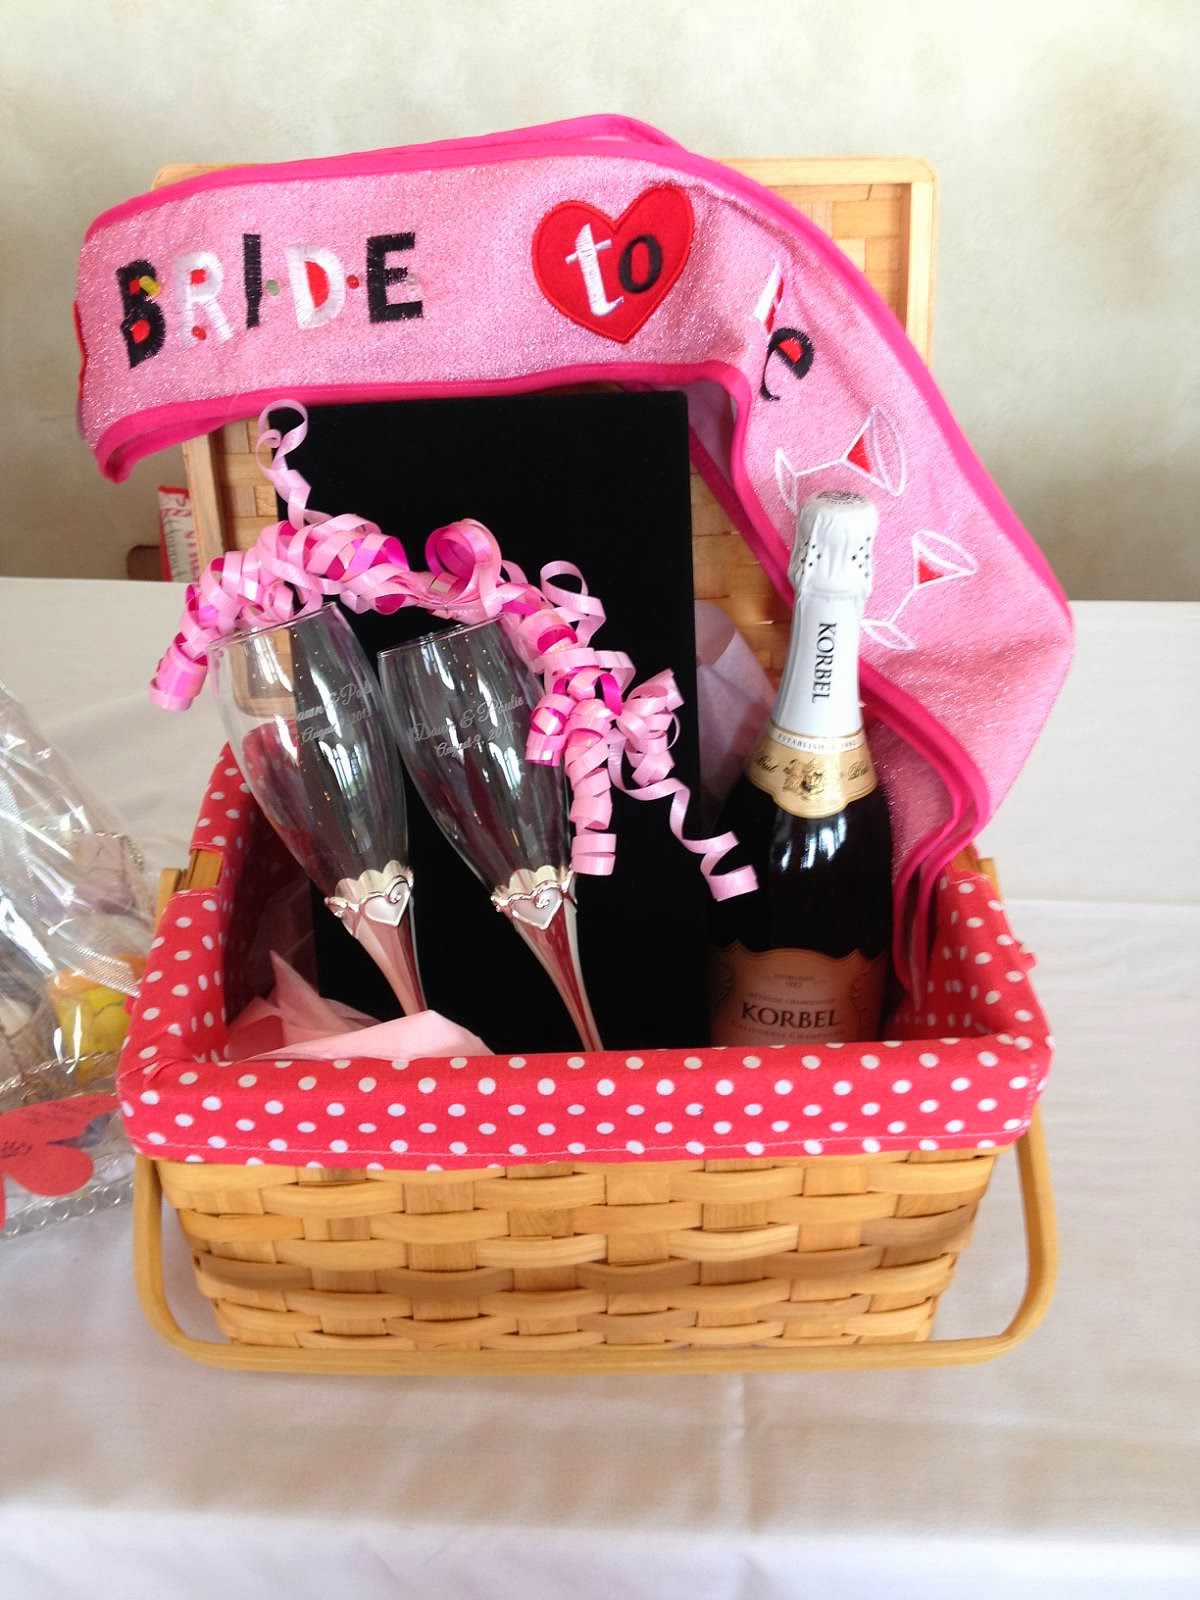 ... : Wedding Wednesdays: Bridal Shower Fun! Holiday Season Gift Baskets